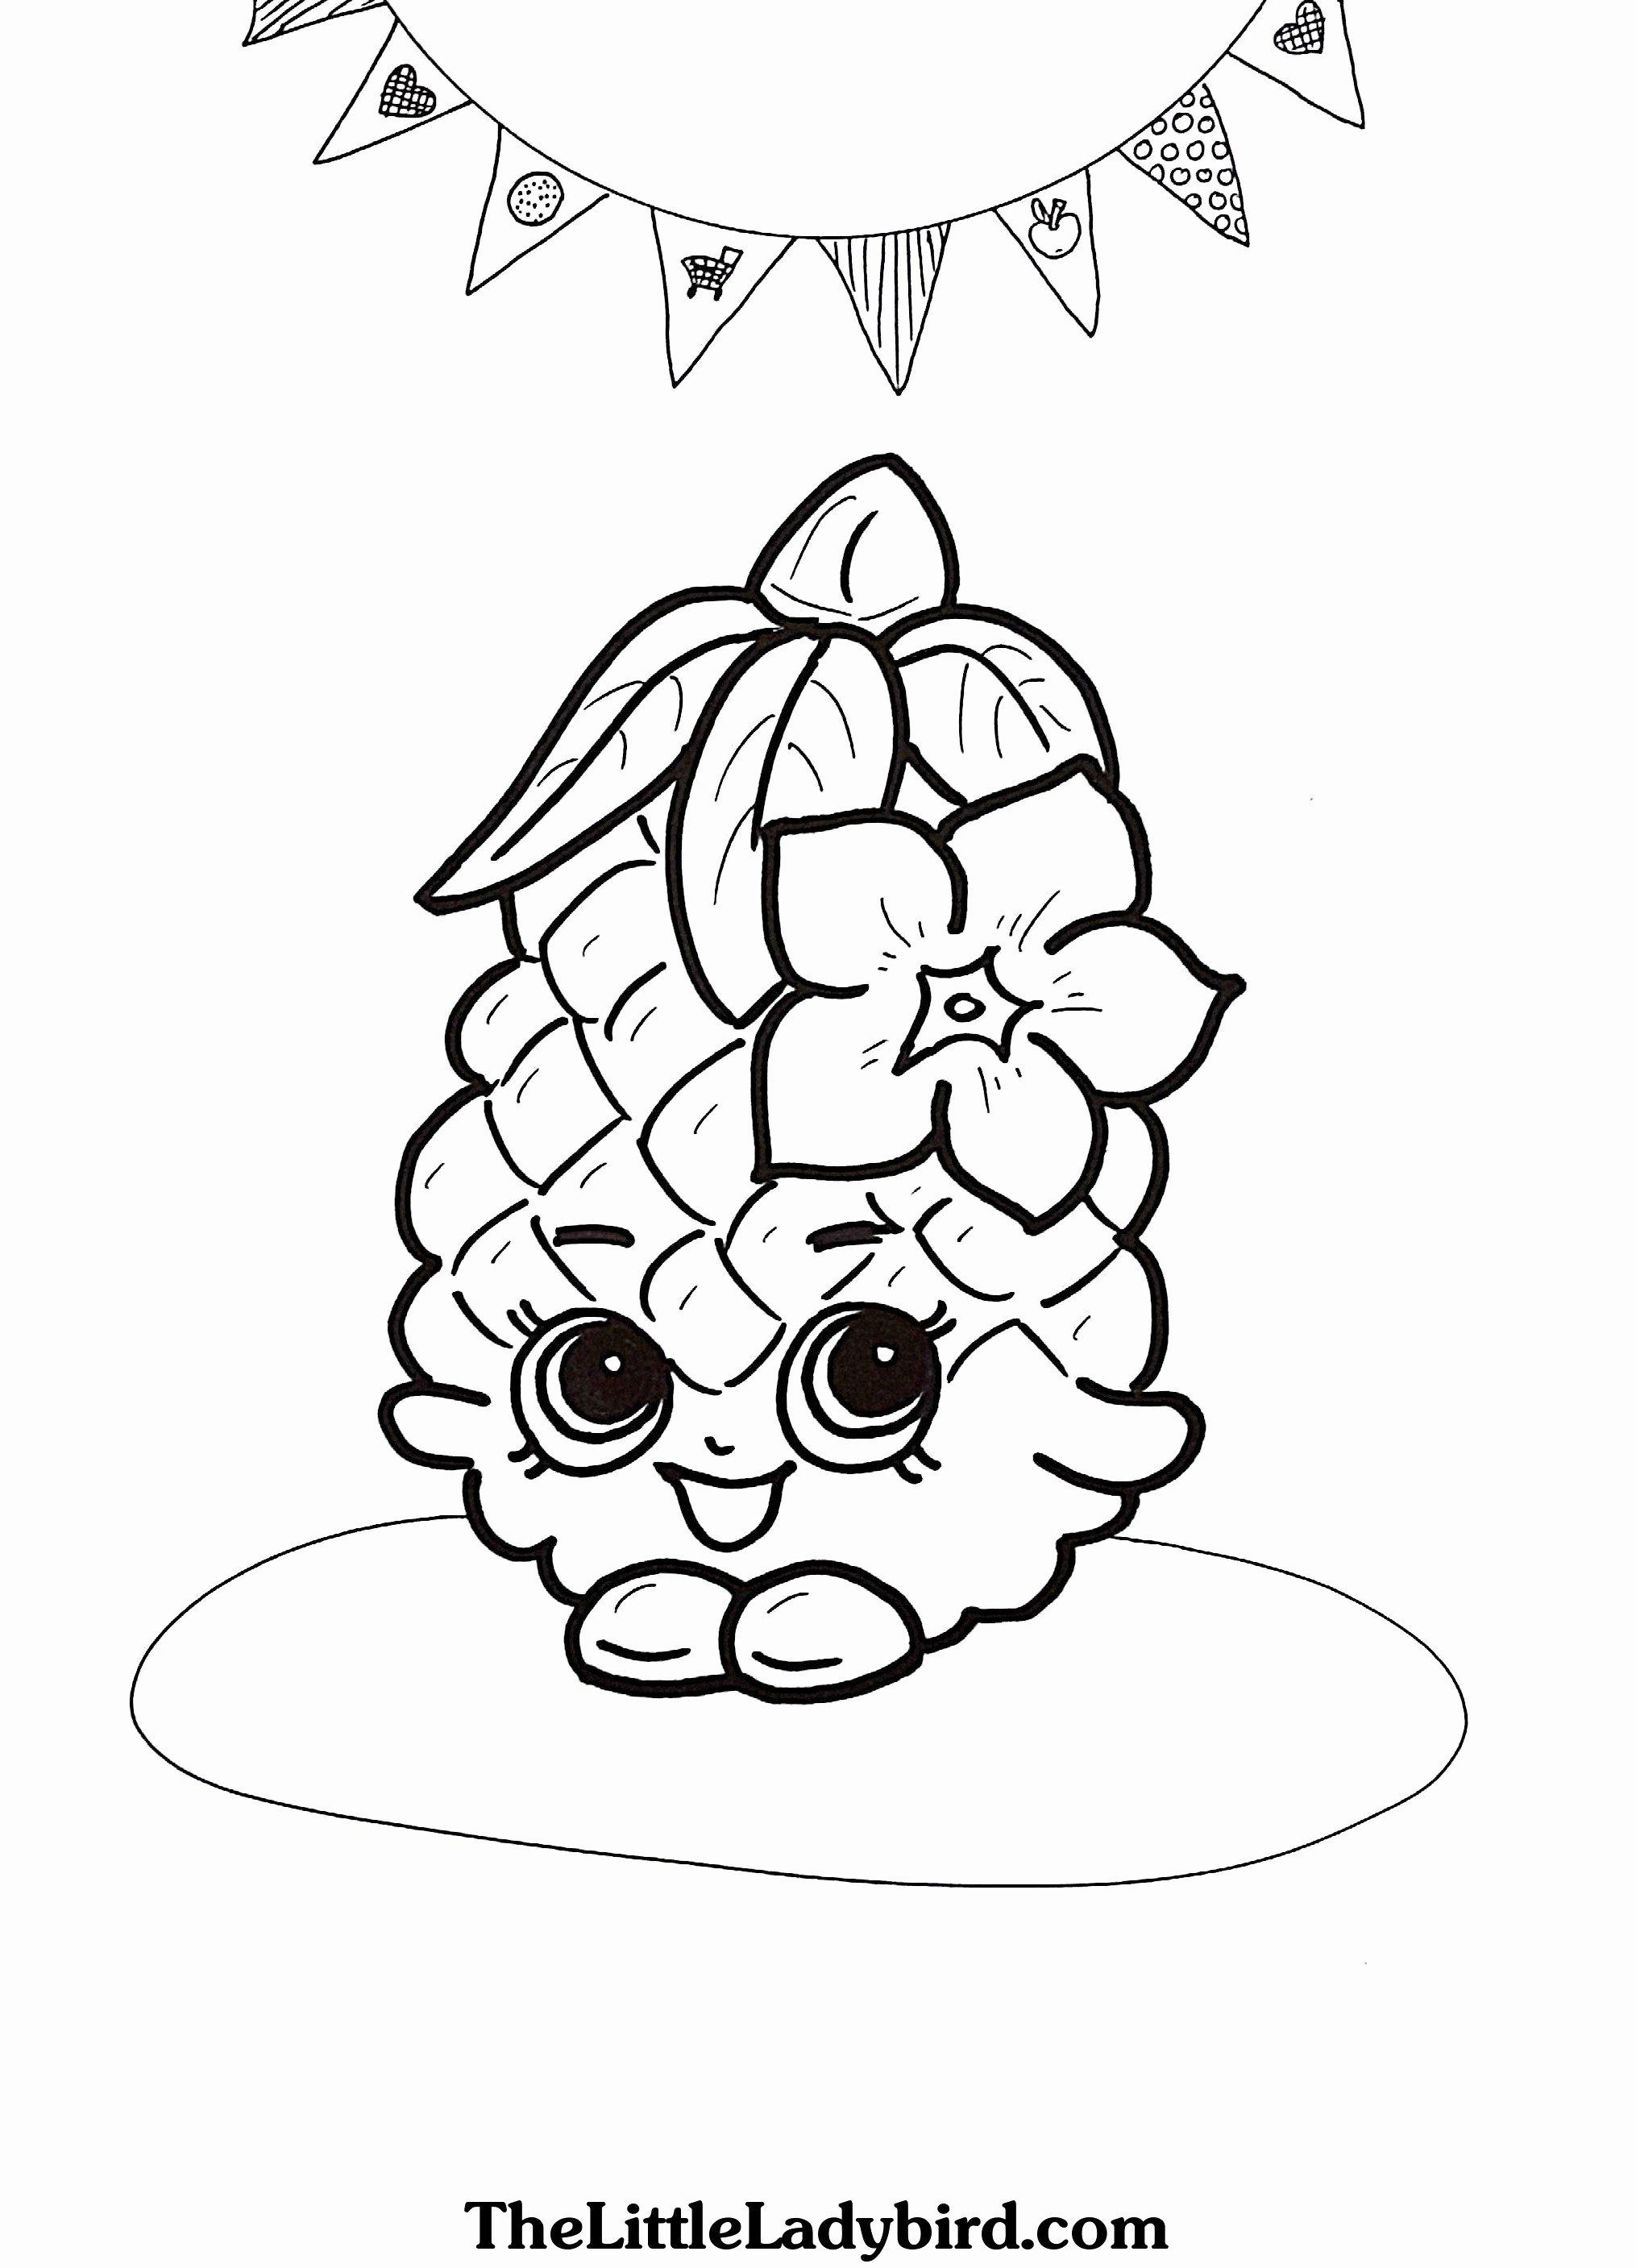 Valentines Day Coloring Page Lovely Printable Valentine Coloring Pages In 2020 Princess Coloring Pages Fall Coloring Pages Valentine Coloring Pages [ 2814 x 2030 Pixel ]